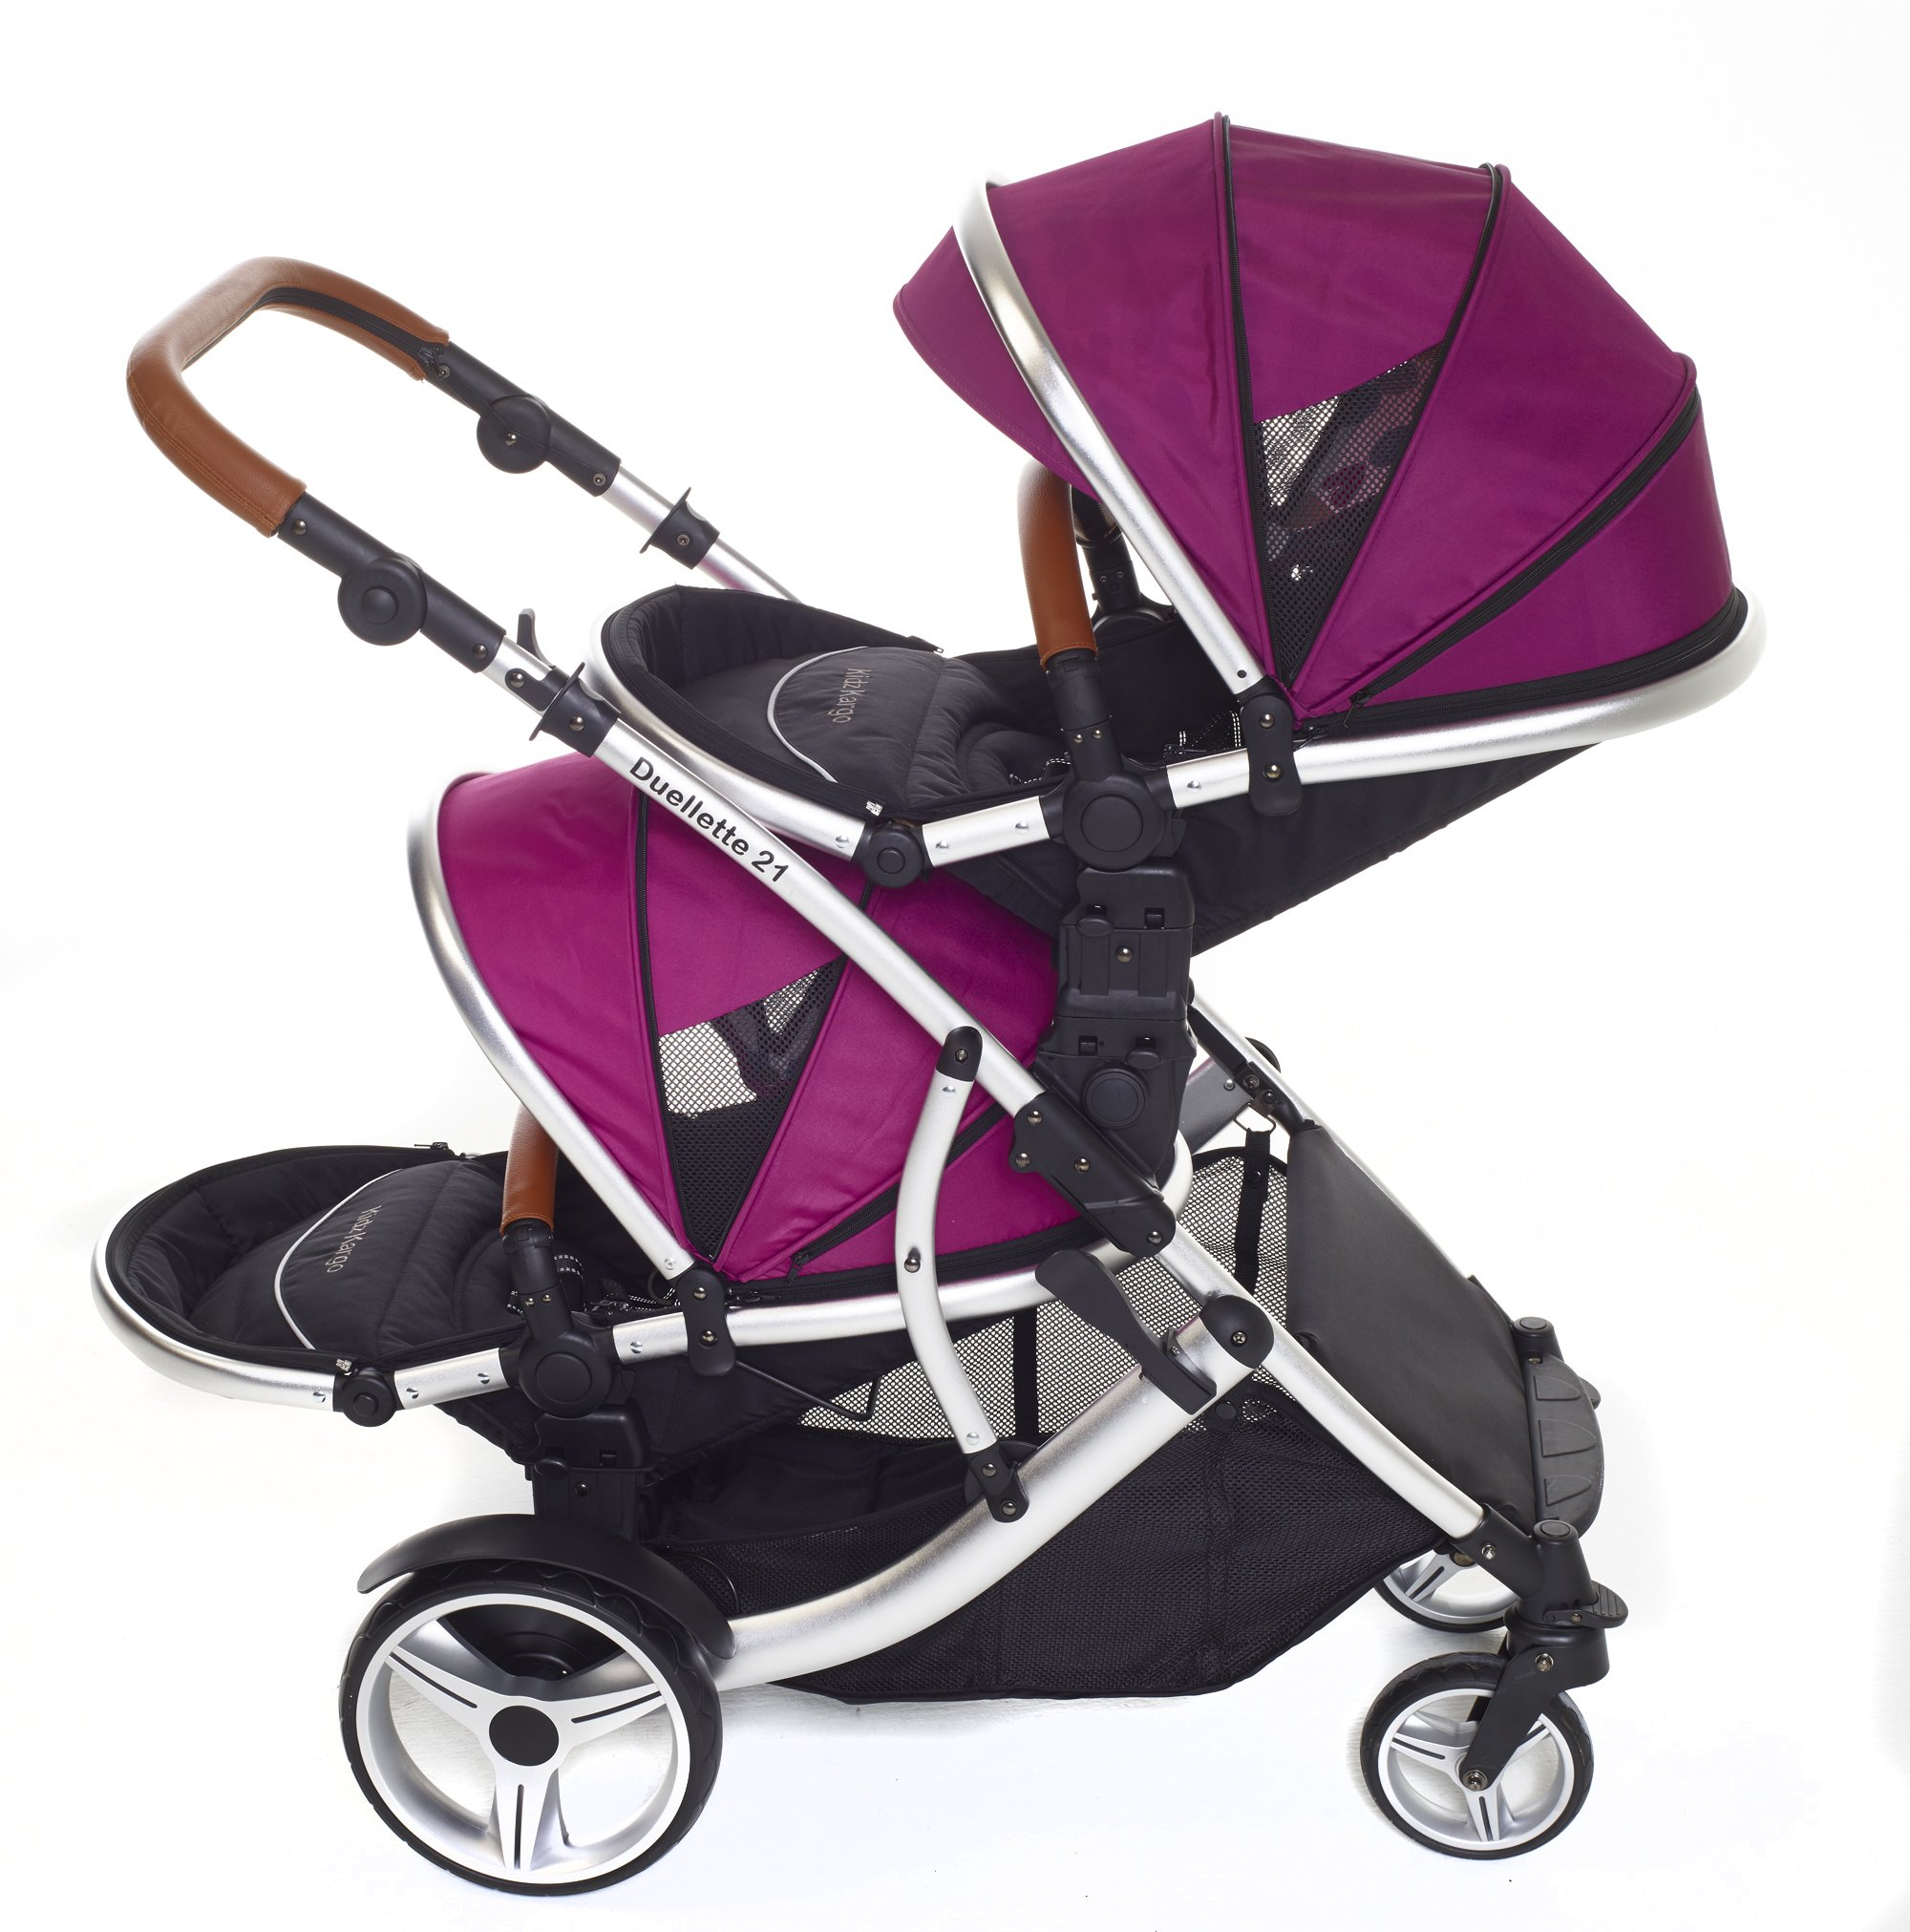 Kids Kargo Double Twin Tandem Pushchair. Duellette BS Suitable for Twins from 6 months. Stroller by Kids Kargo (Dooglebug raspberry) Kids Kargo Demo video please see link http://youtu.be/Ngj0yD3TMSM Various seat positions. Both seats can face mum (ideal for twins) Suitability Twins (Newborn Twins if used with car seats). Accommodates 1 or 2 car seats 3